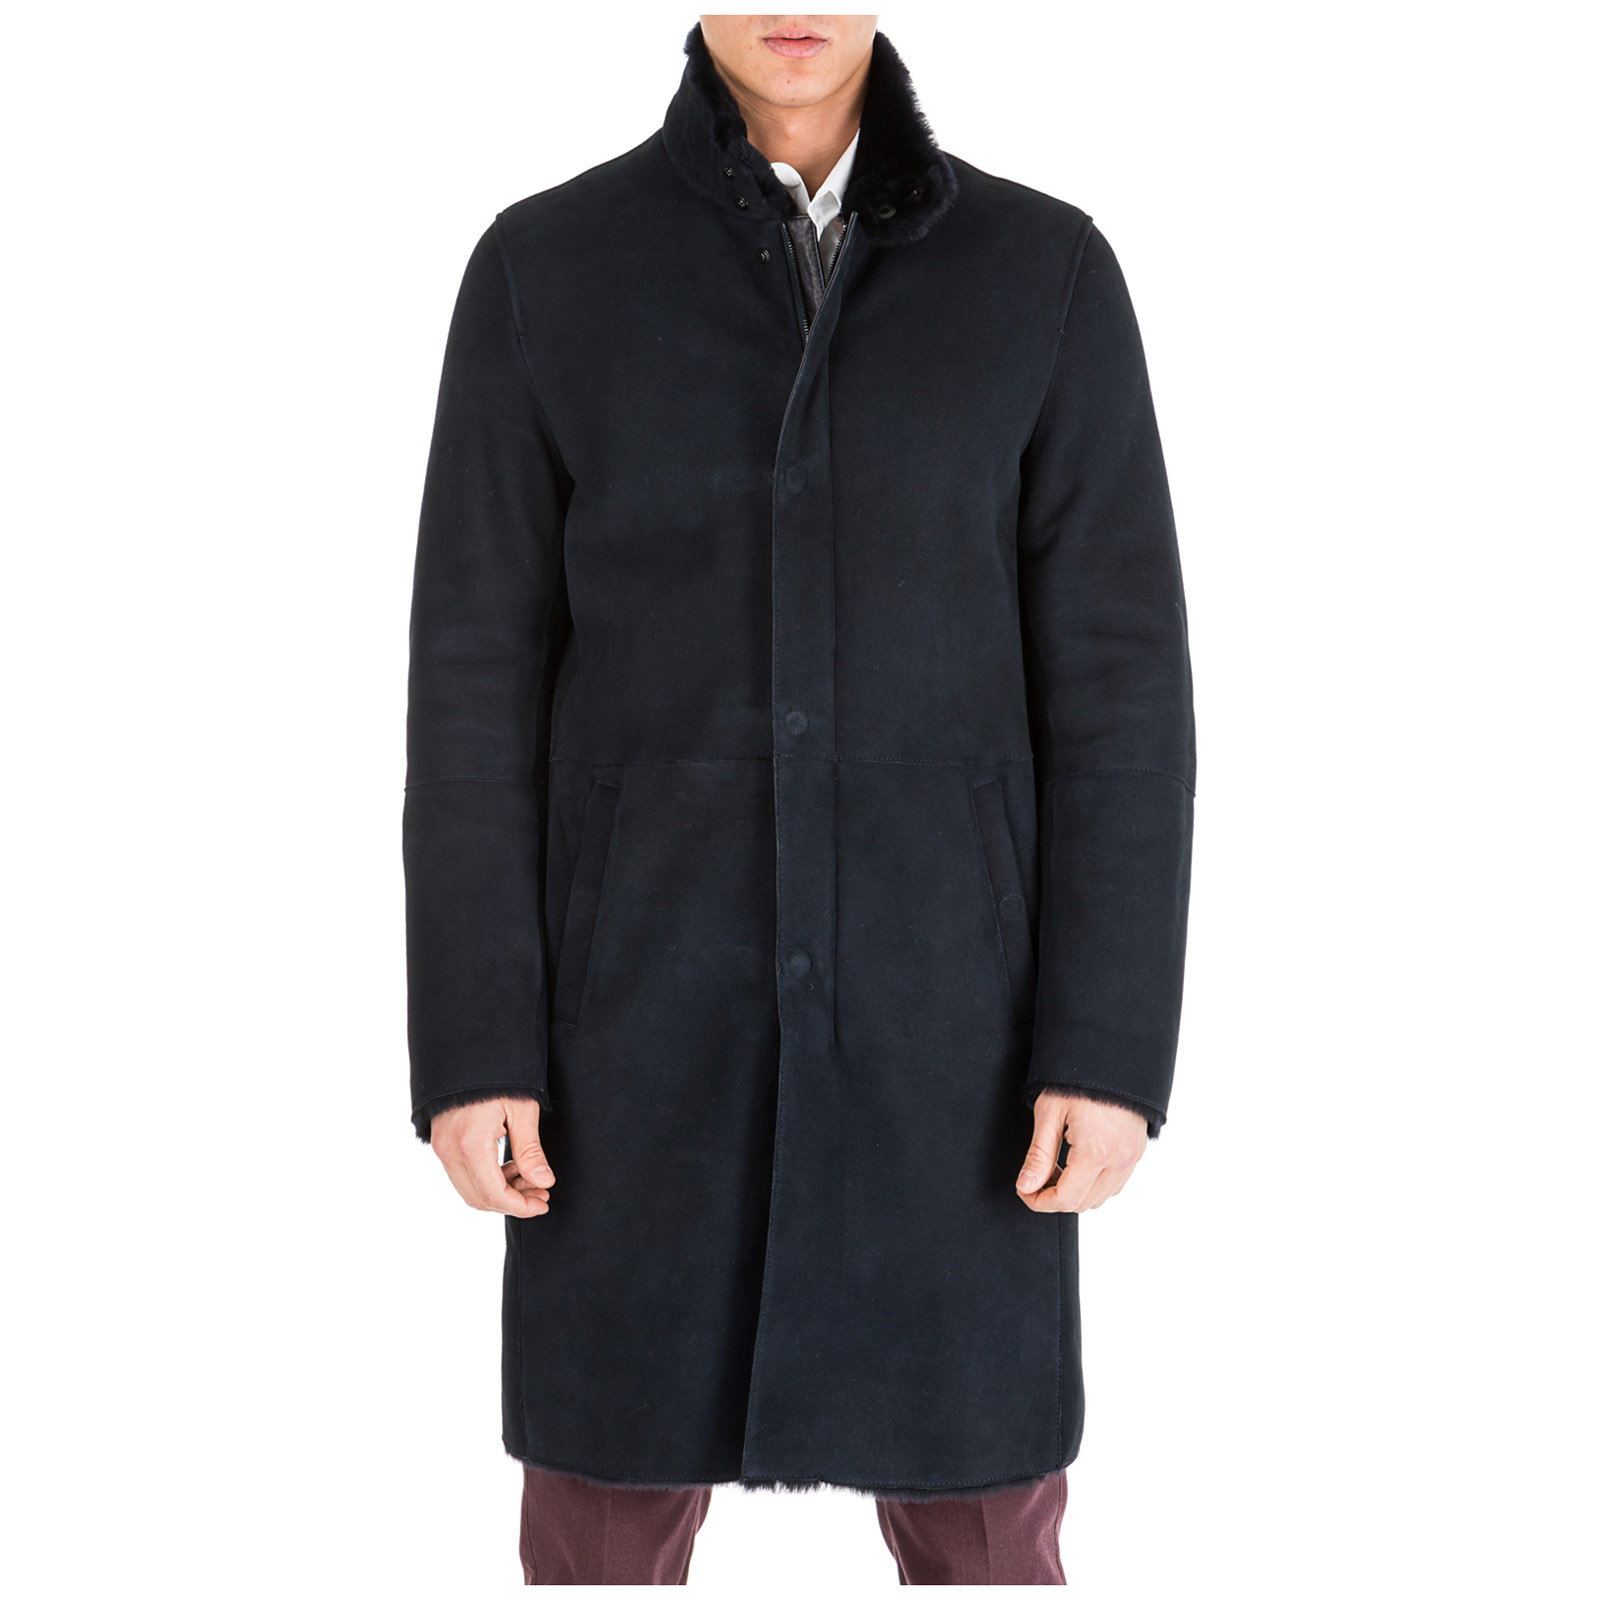 finest selection fd2f5 96b15 Cappotto uomo